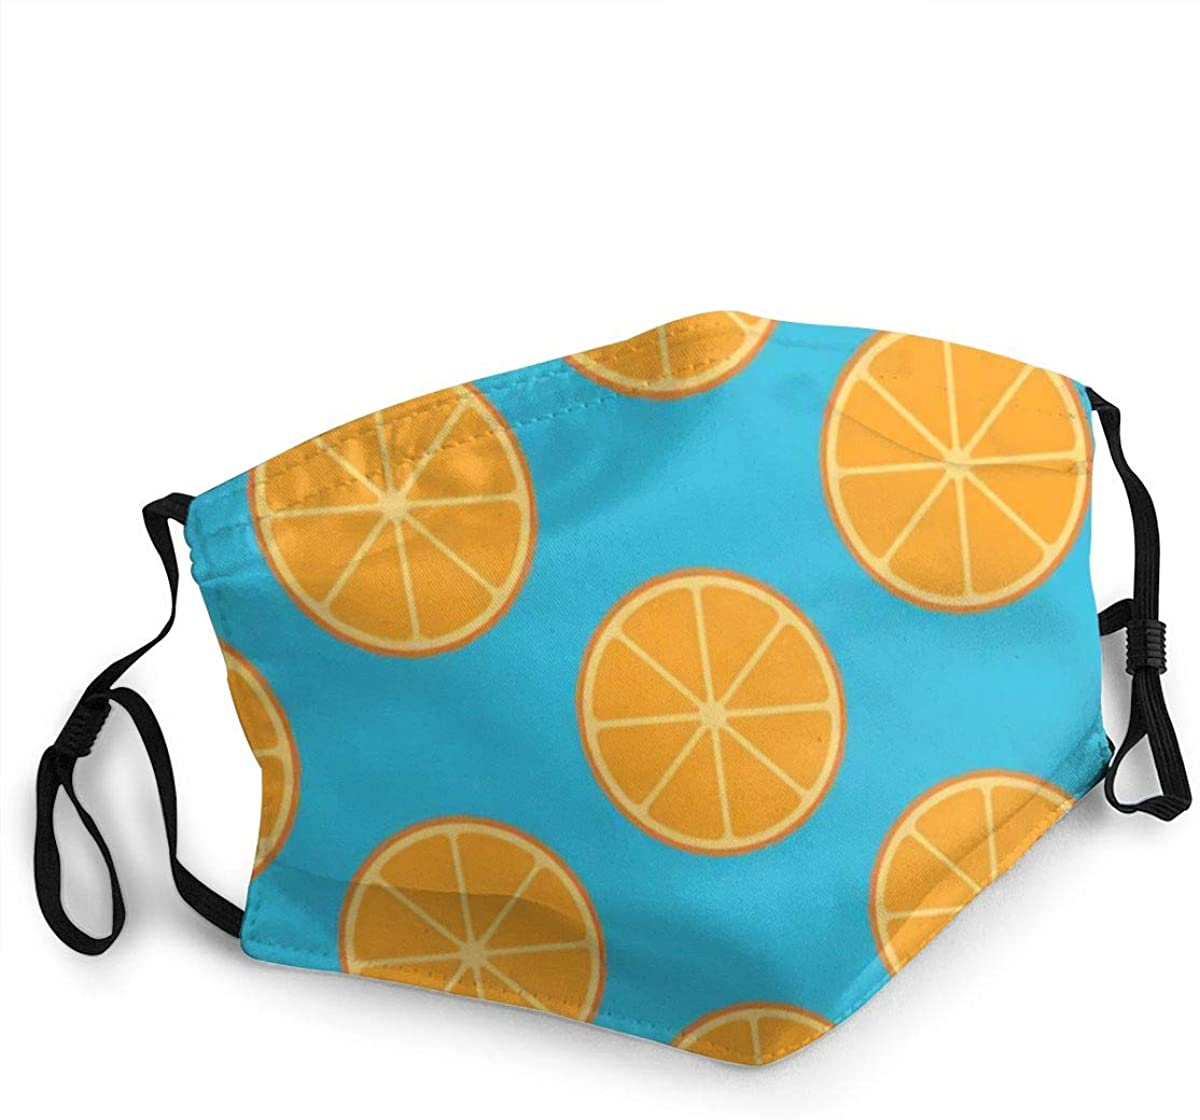 Face Mask, Comfortable Non-Elastic Ear Loops,Sliced Orange Fruit On Blue Washable and Reusable, Unisex Mouth Mas